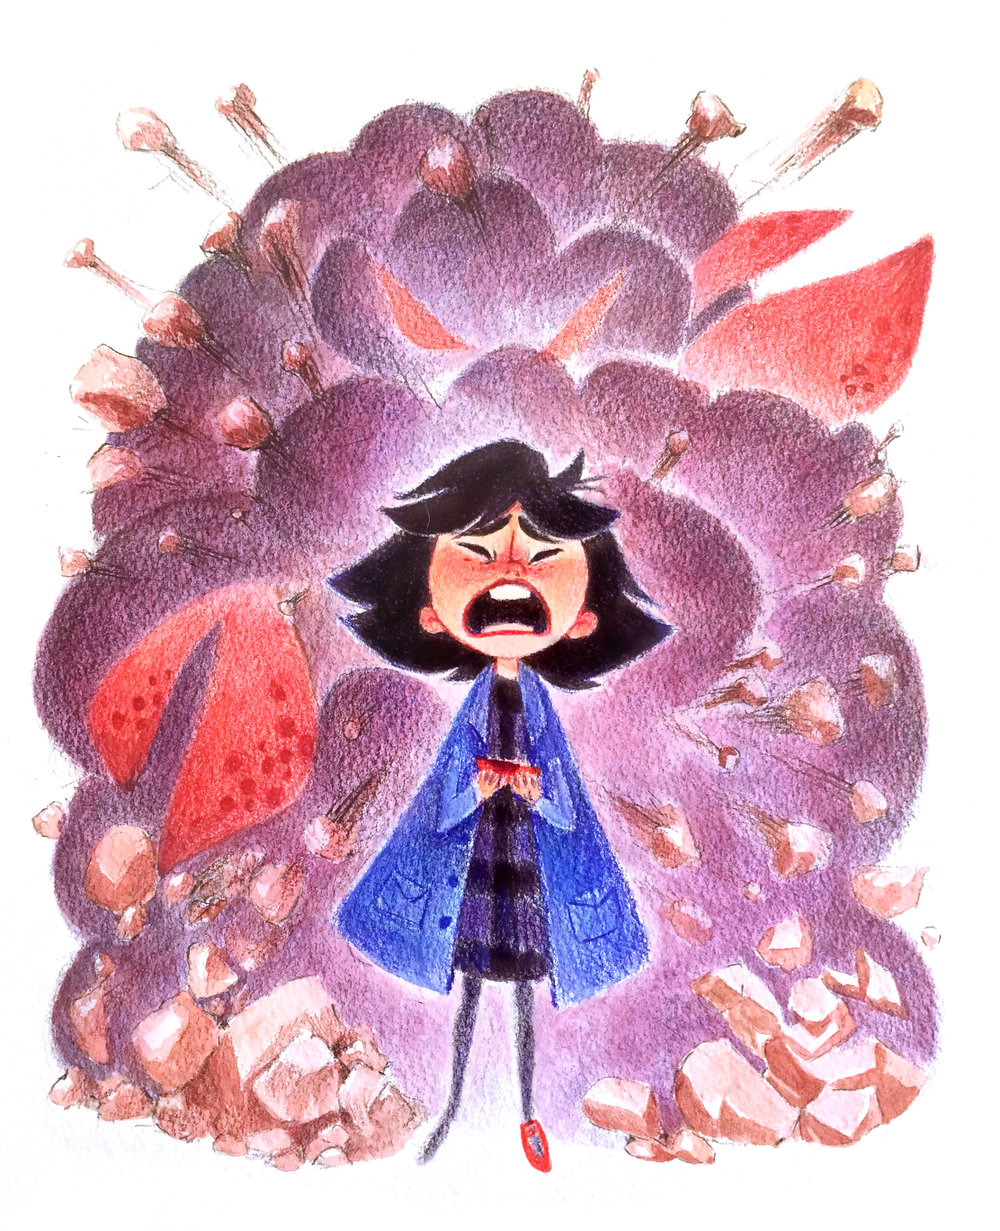 Original colored pencil/watercolor piece created for a Guilermo del Toro tribute gallery show with Gallery 1988, now in the private collection of Guillermo Del Toro himself.